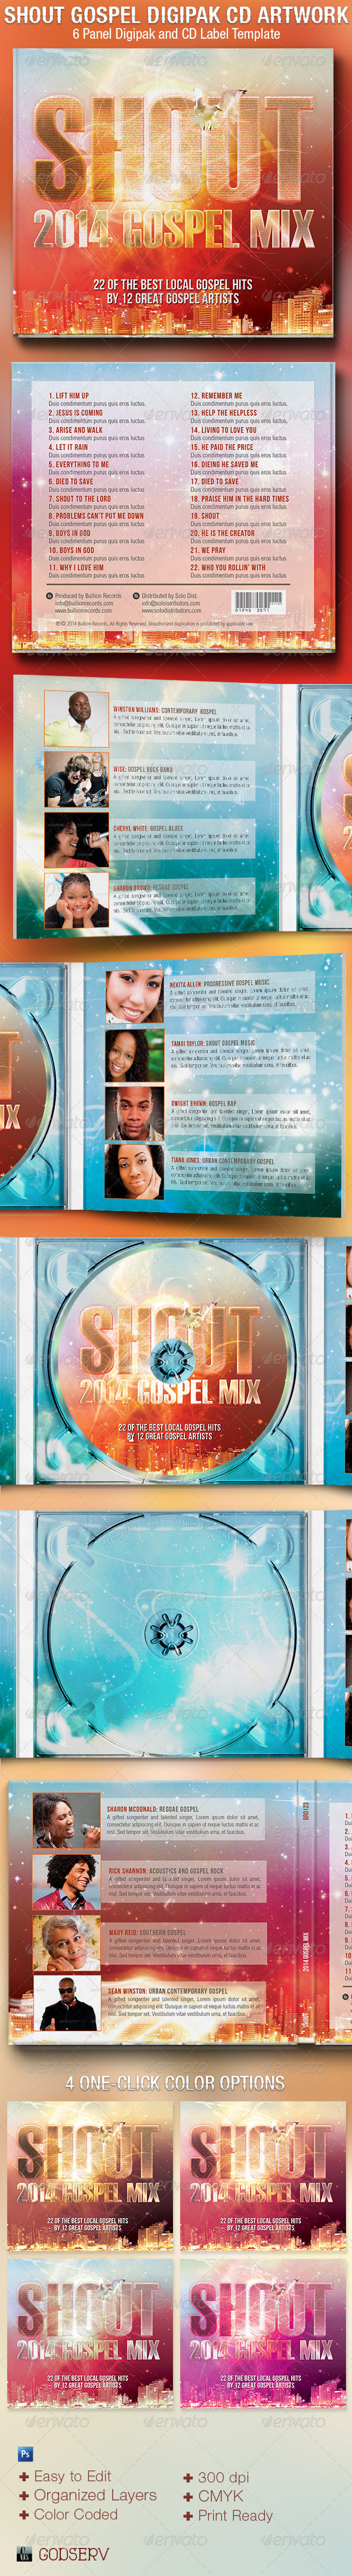 Shout Gospel 6 Panel Digipak CD Artwork Template - CD & DVD artwork Print Templates